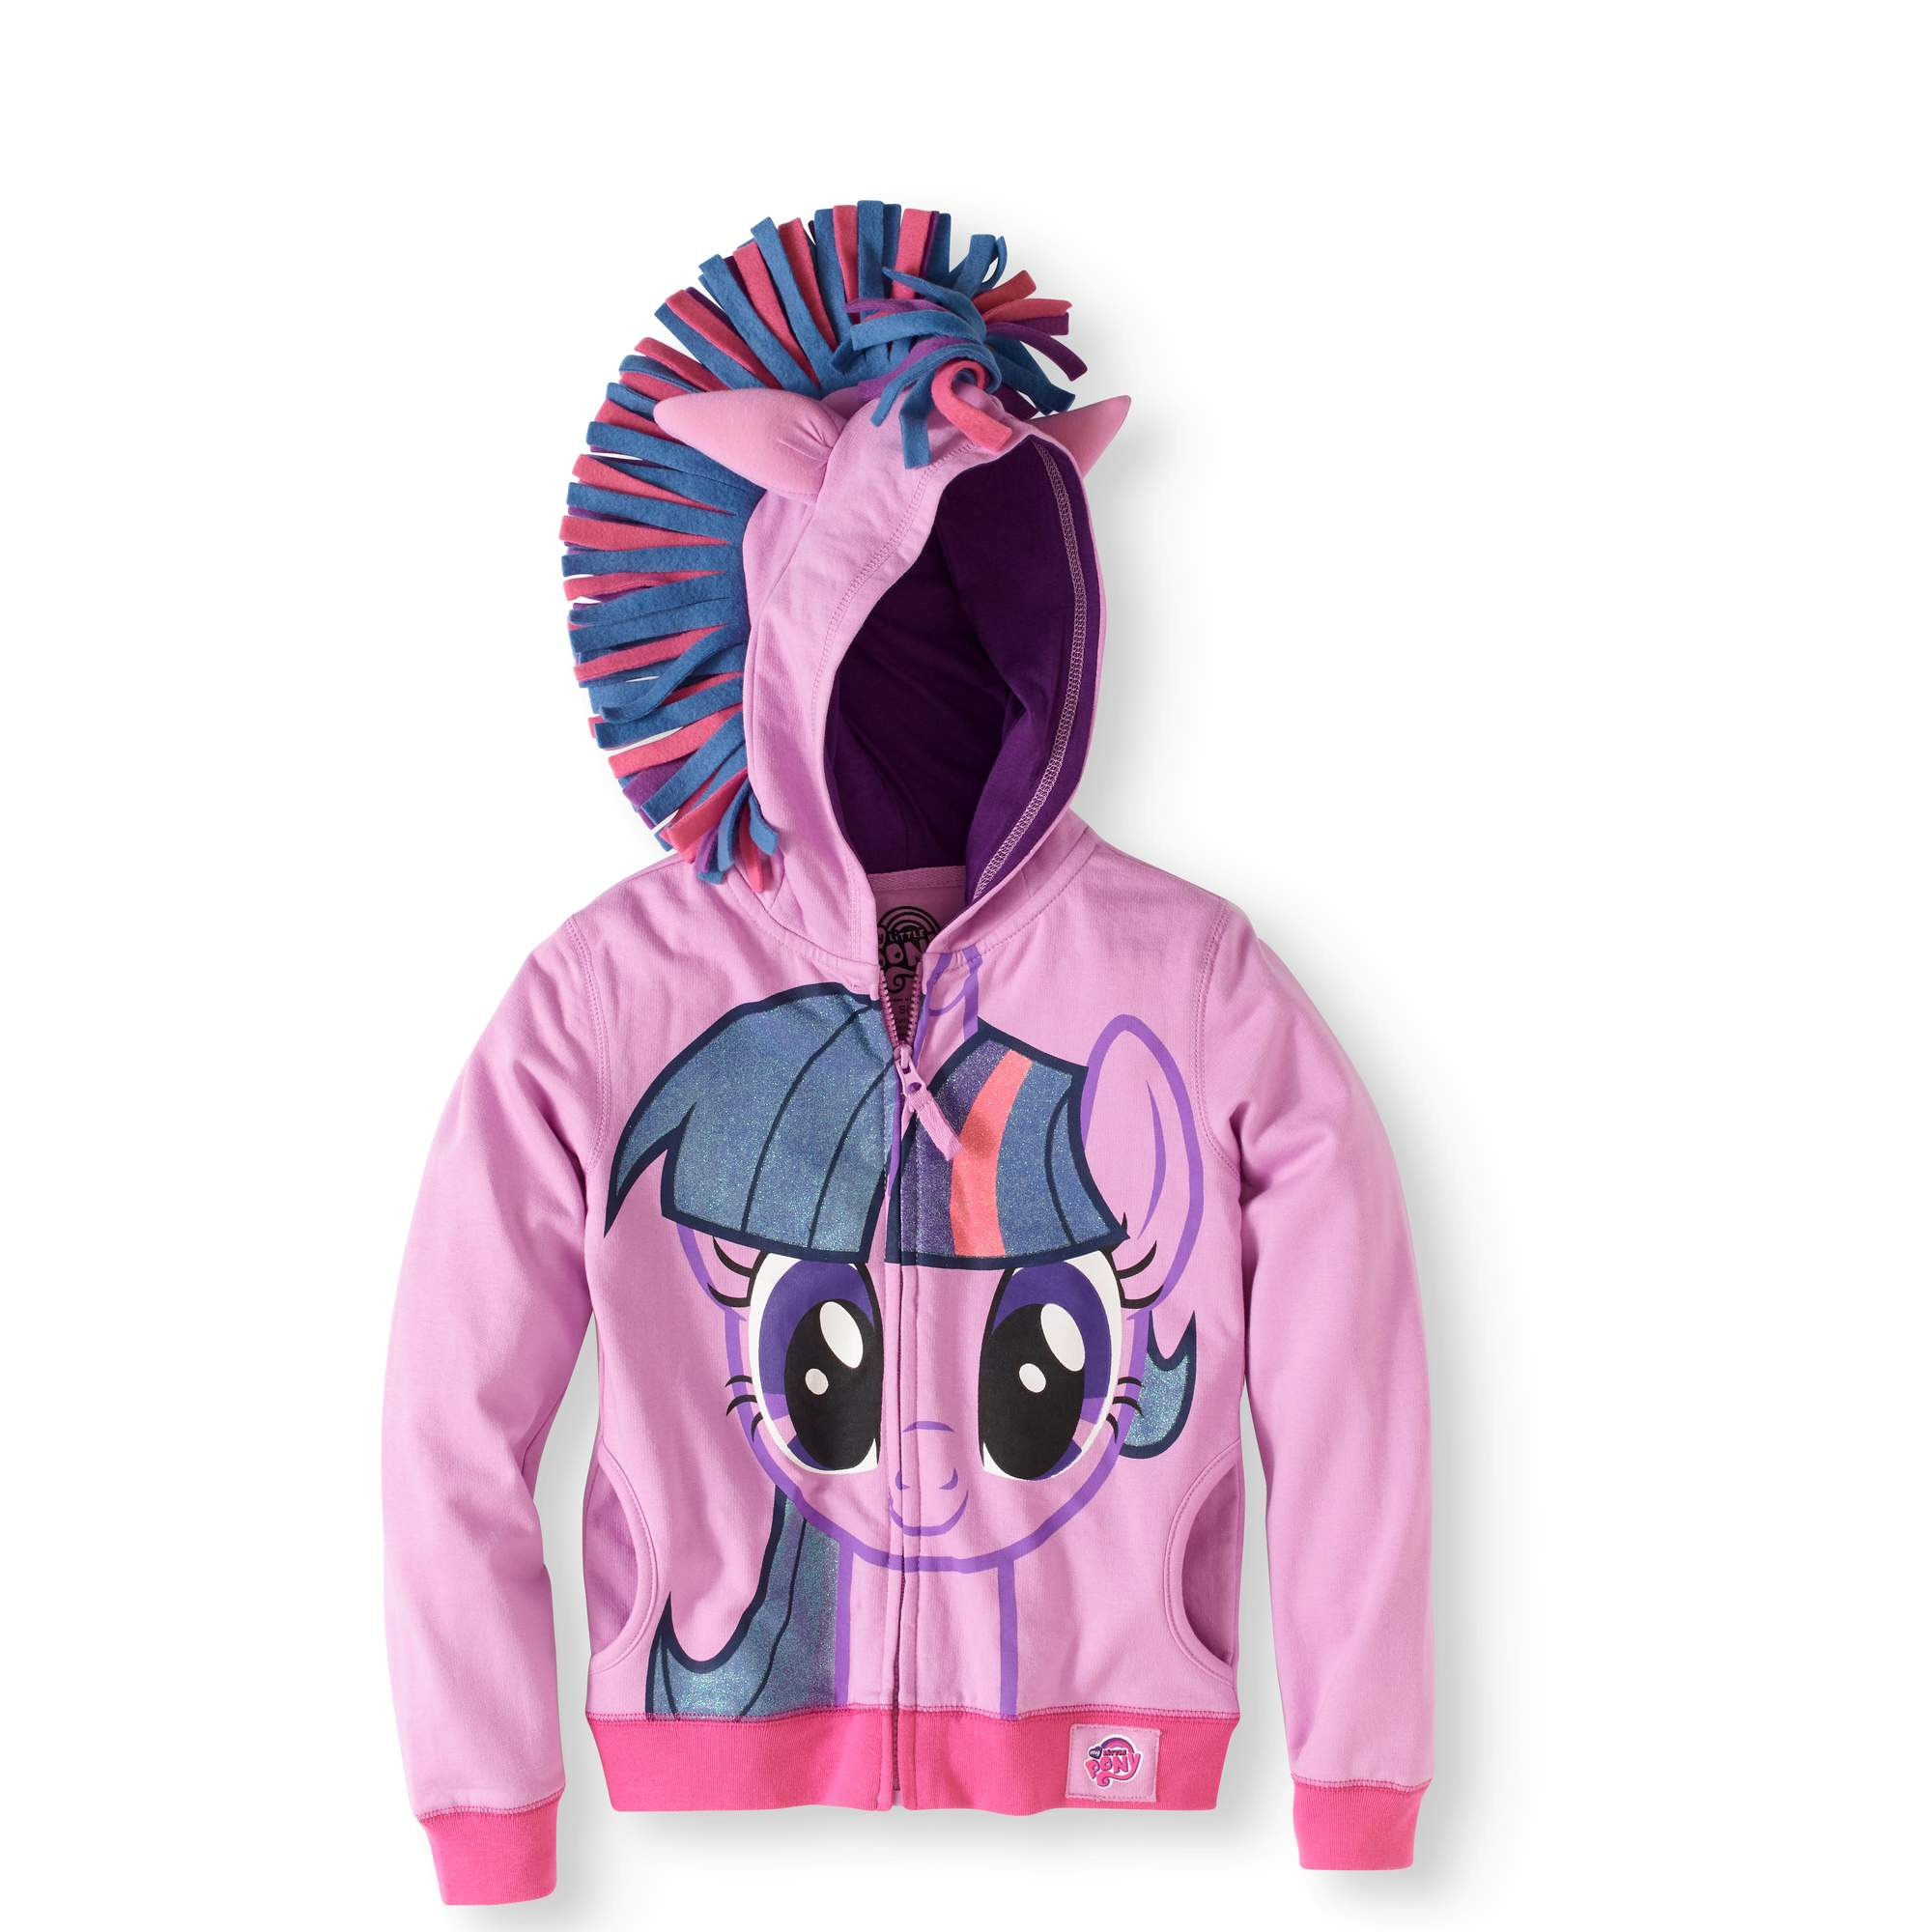 Girls' Twilight Sparkle Fleece Graphic Costume Hoodie With 3D Wings on Back